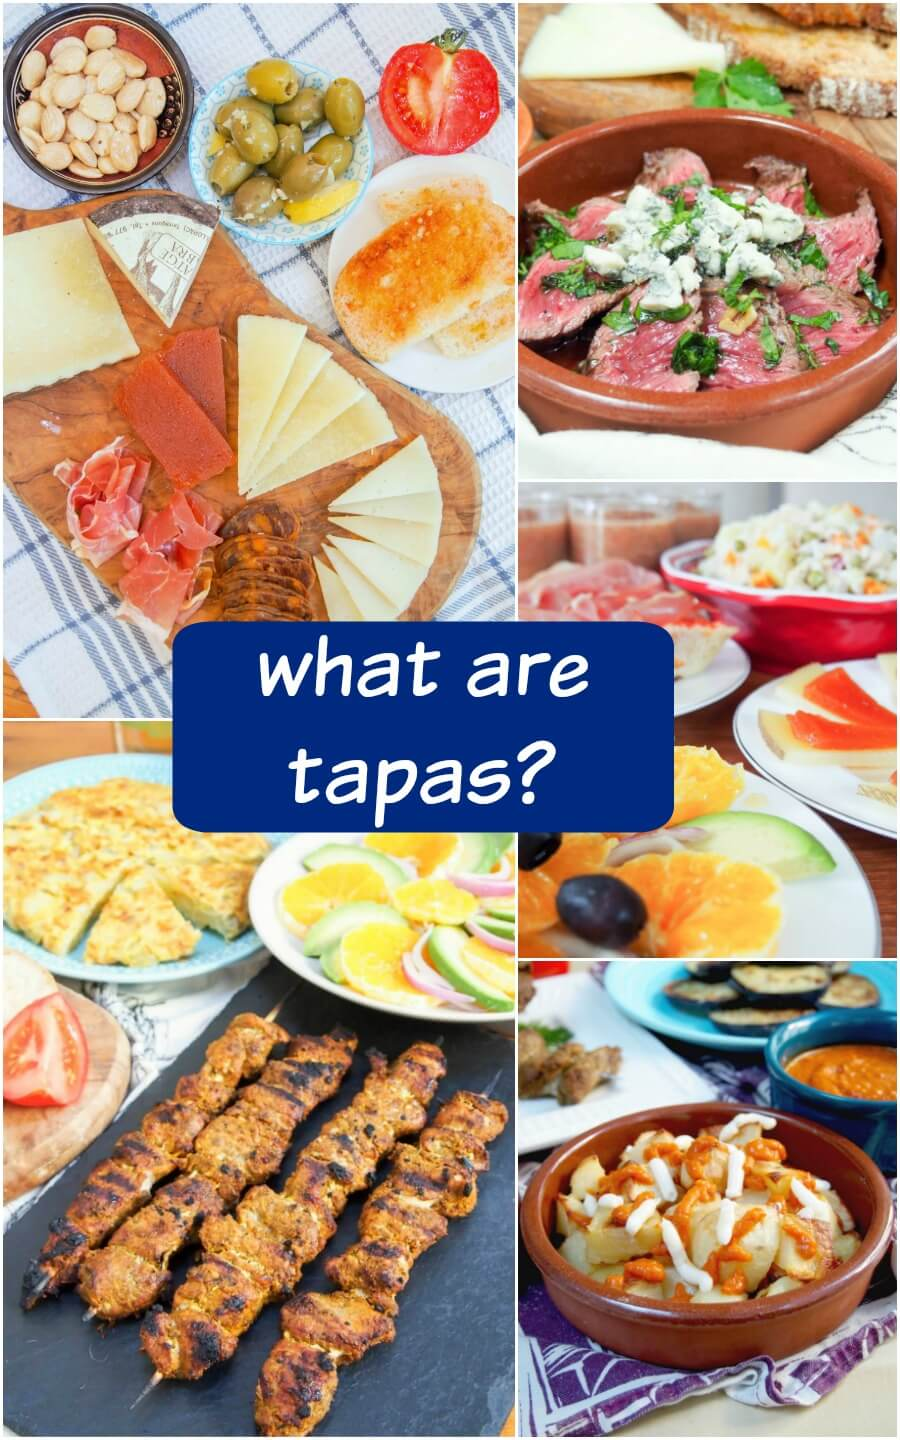 You've probably heard the name, but what are tapas? Take a look at this easy-to-follow guide to different types of Spanish tapas and get some classic examples to look for or make at home! Many of them are easier than you might think, and tapas are perfect for entertaining.